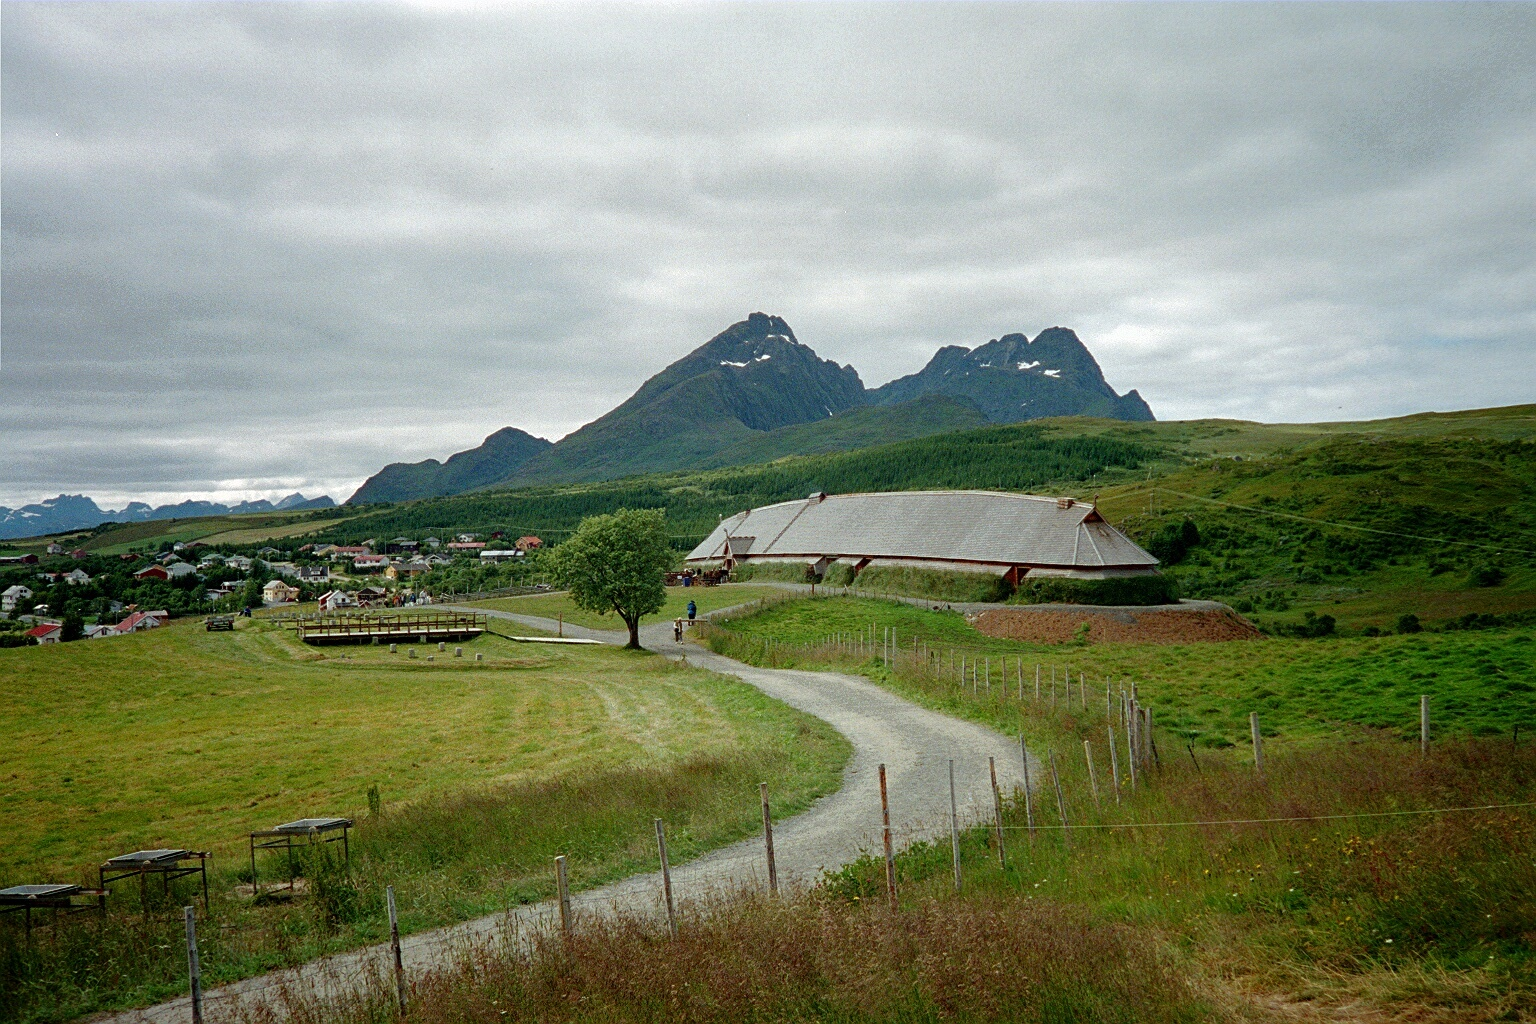 The reconstructed Norse longhouse at Borg, in Lofoten Islands, which belongs to the Lofotr Viking Museum. Image source: www.wikimedia.commons.org